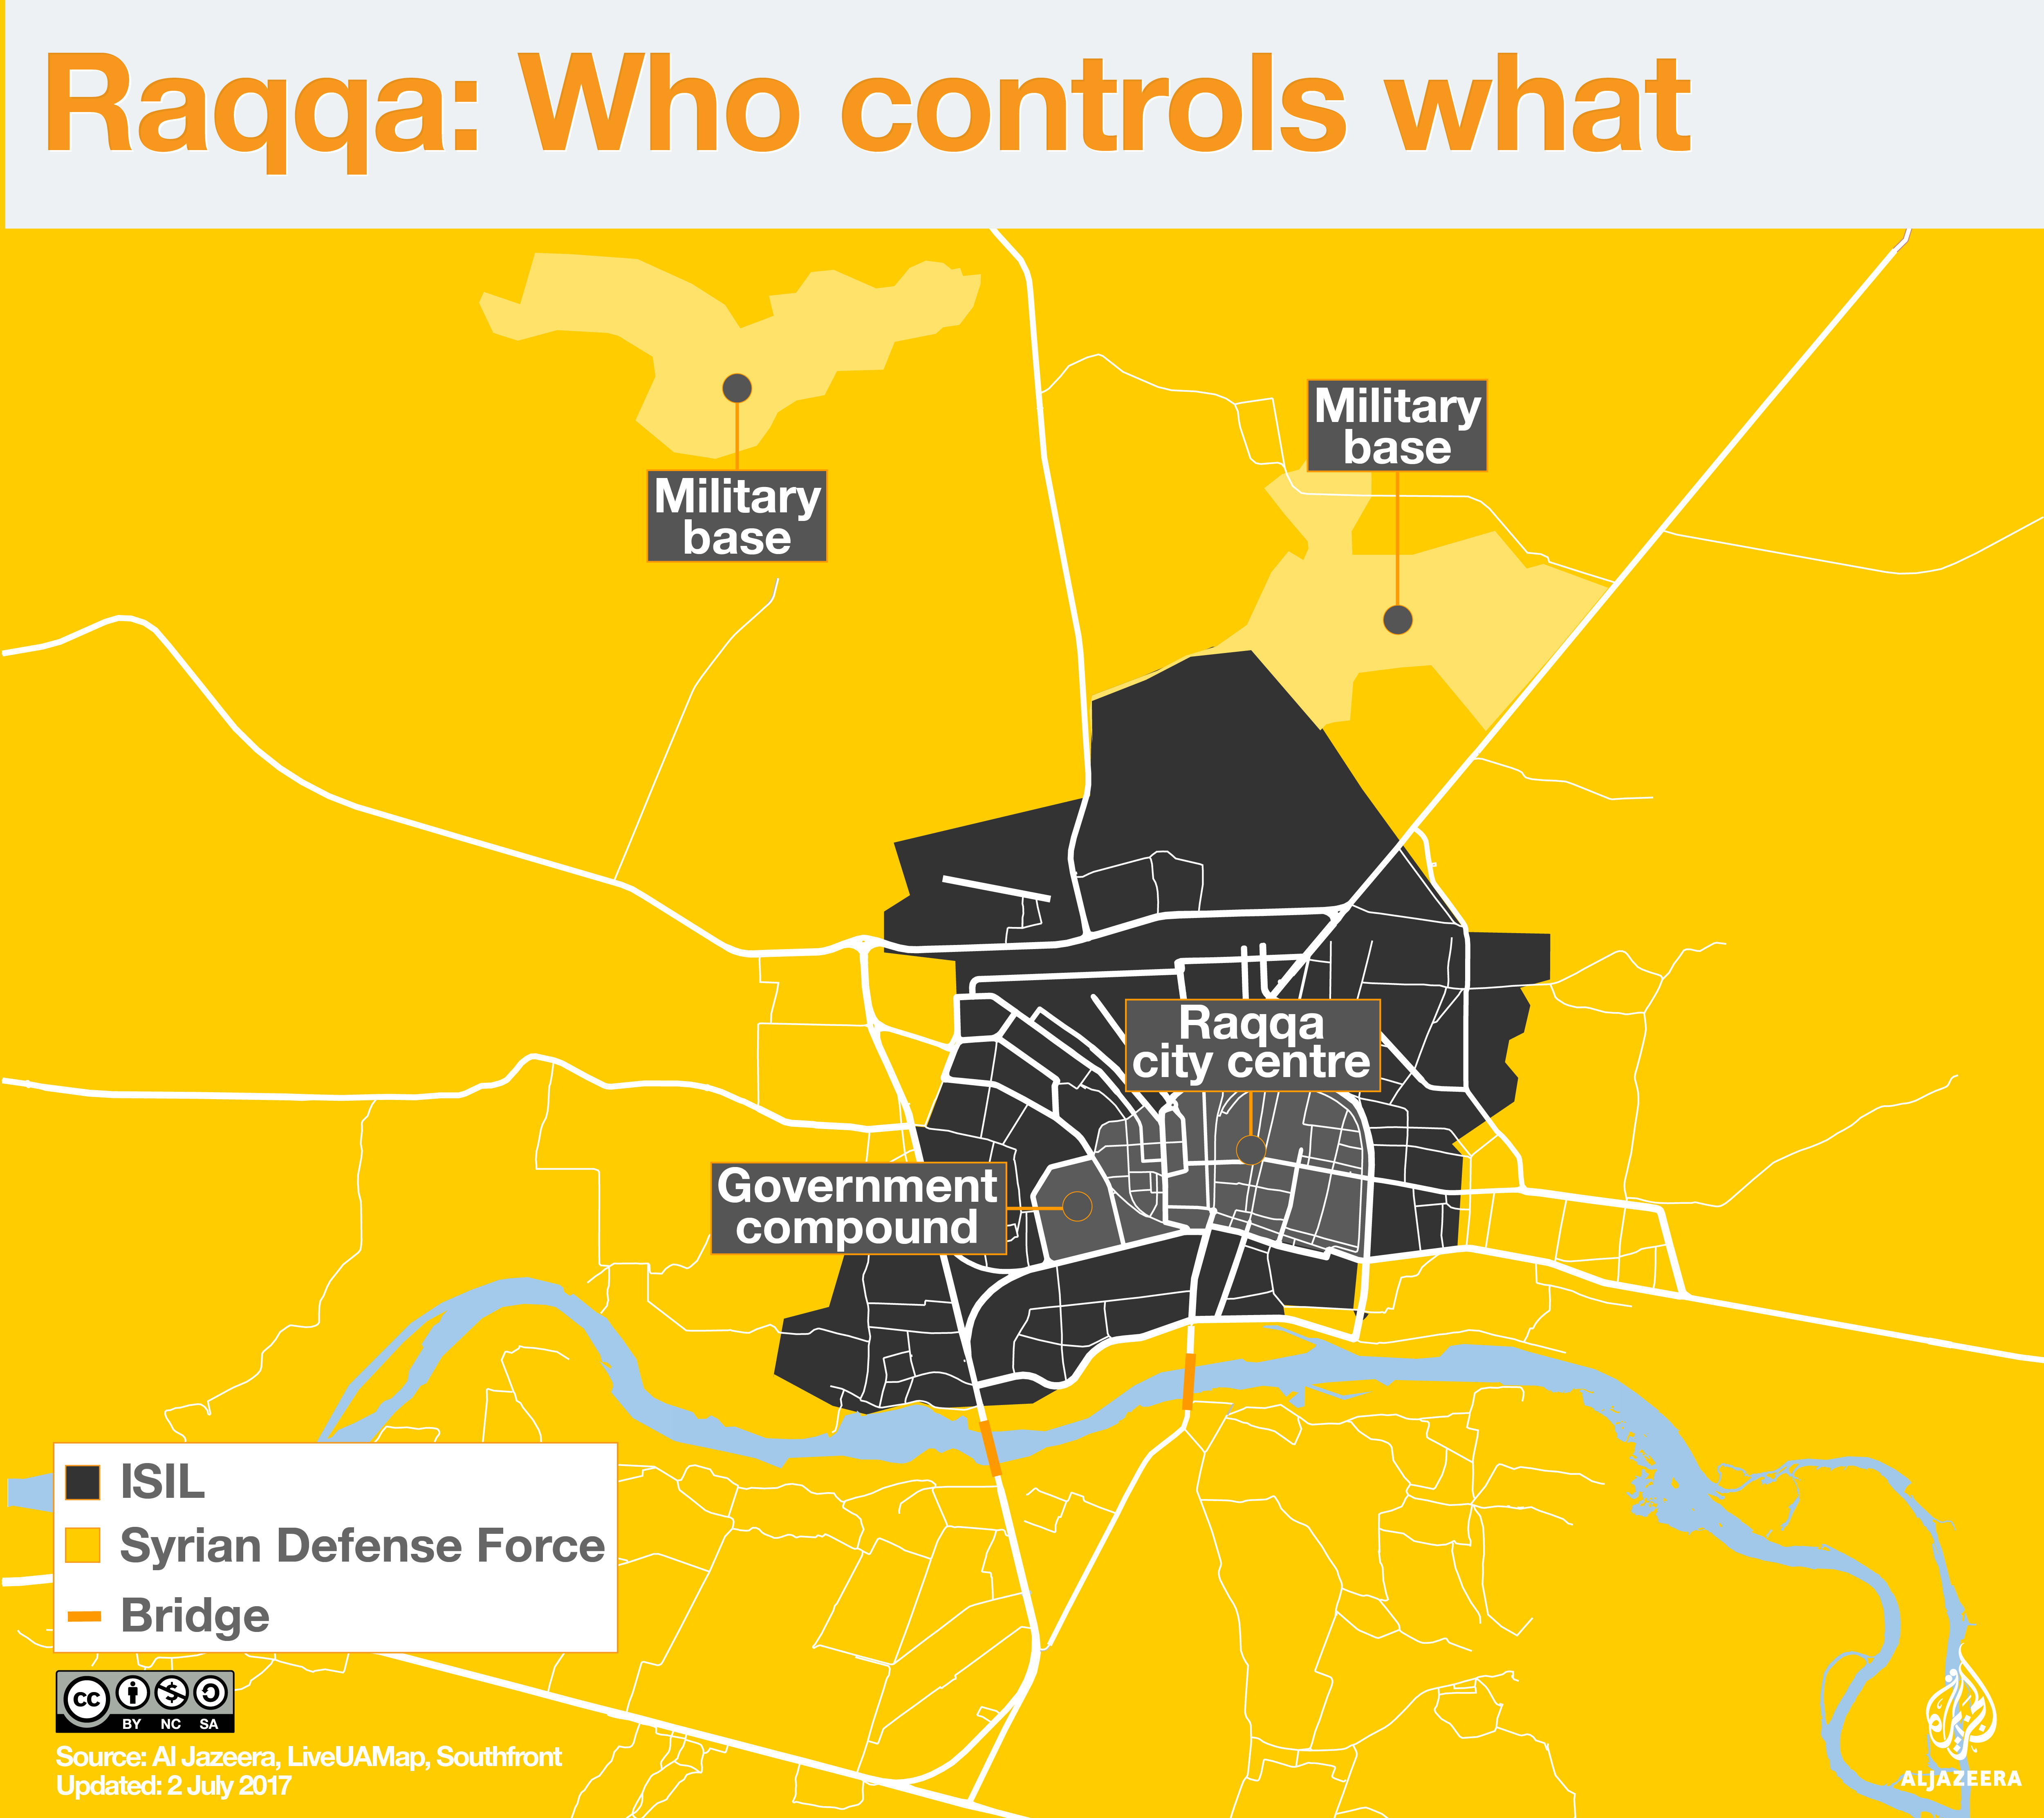 raqqa who controls what infographic map